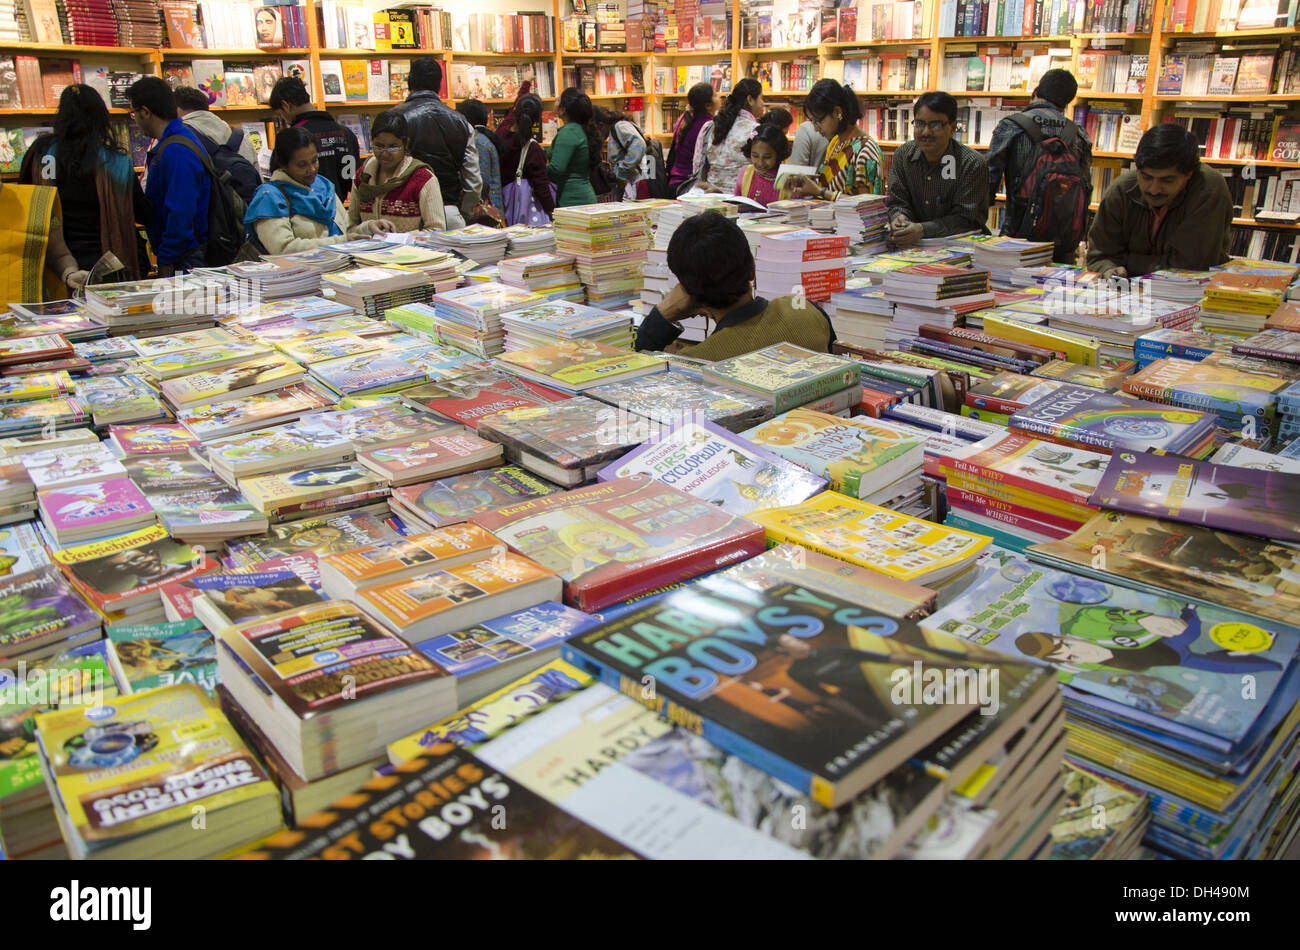 Exhibition Stall Booking In : Book festivals stock photos & book festivals stock images alamy